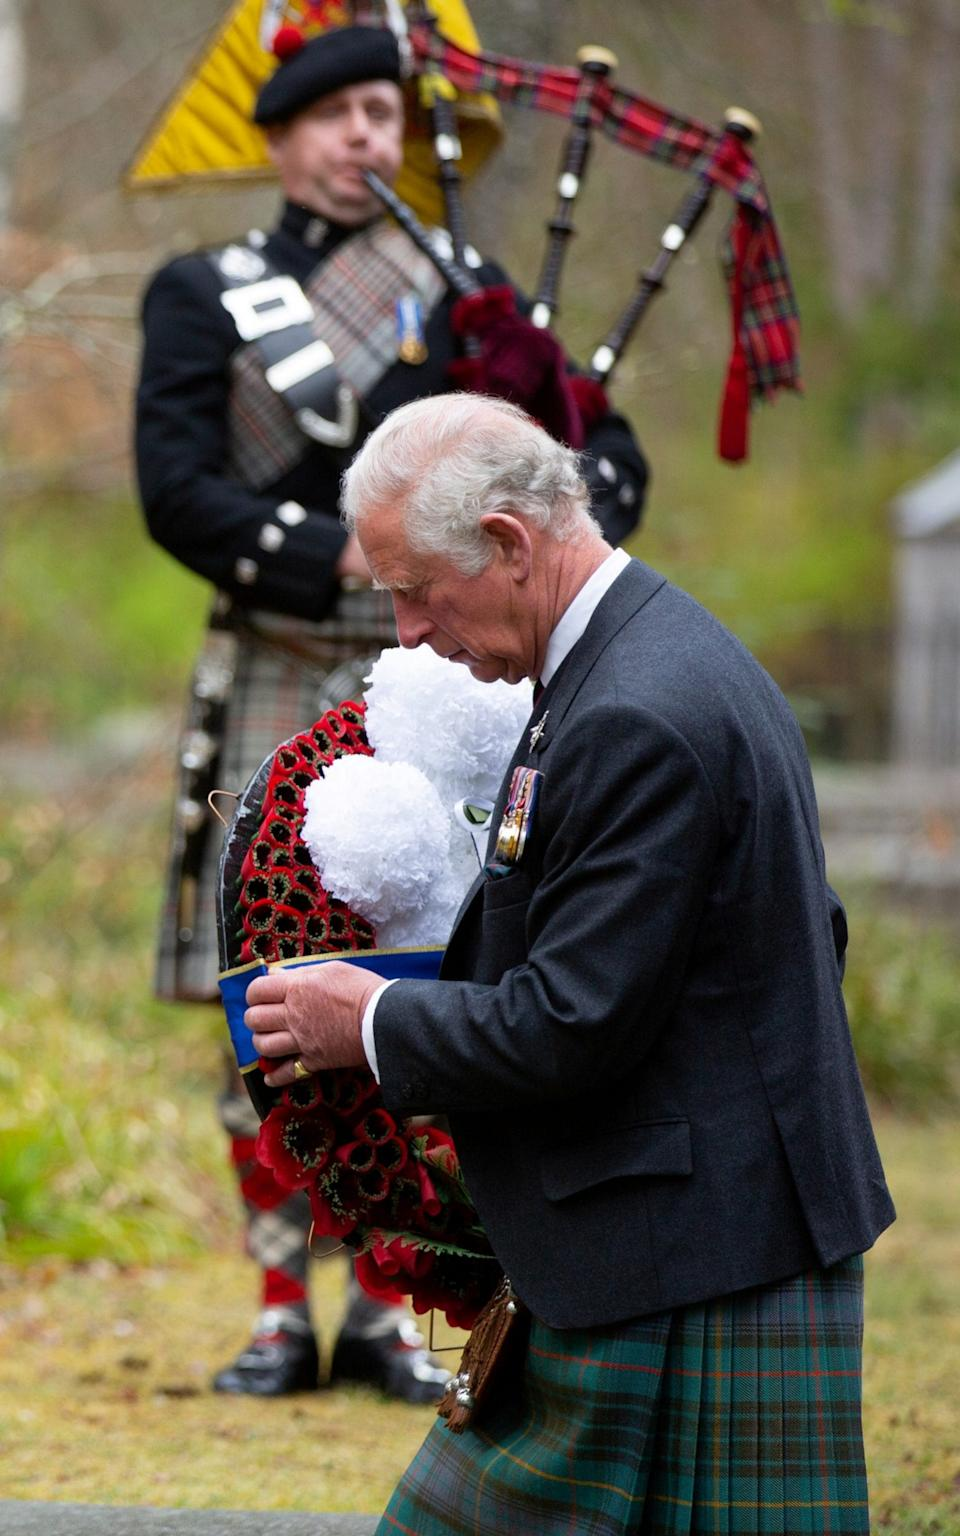 Prince Charles is known for his affection for Scotland - Pool/Reuters